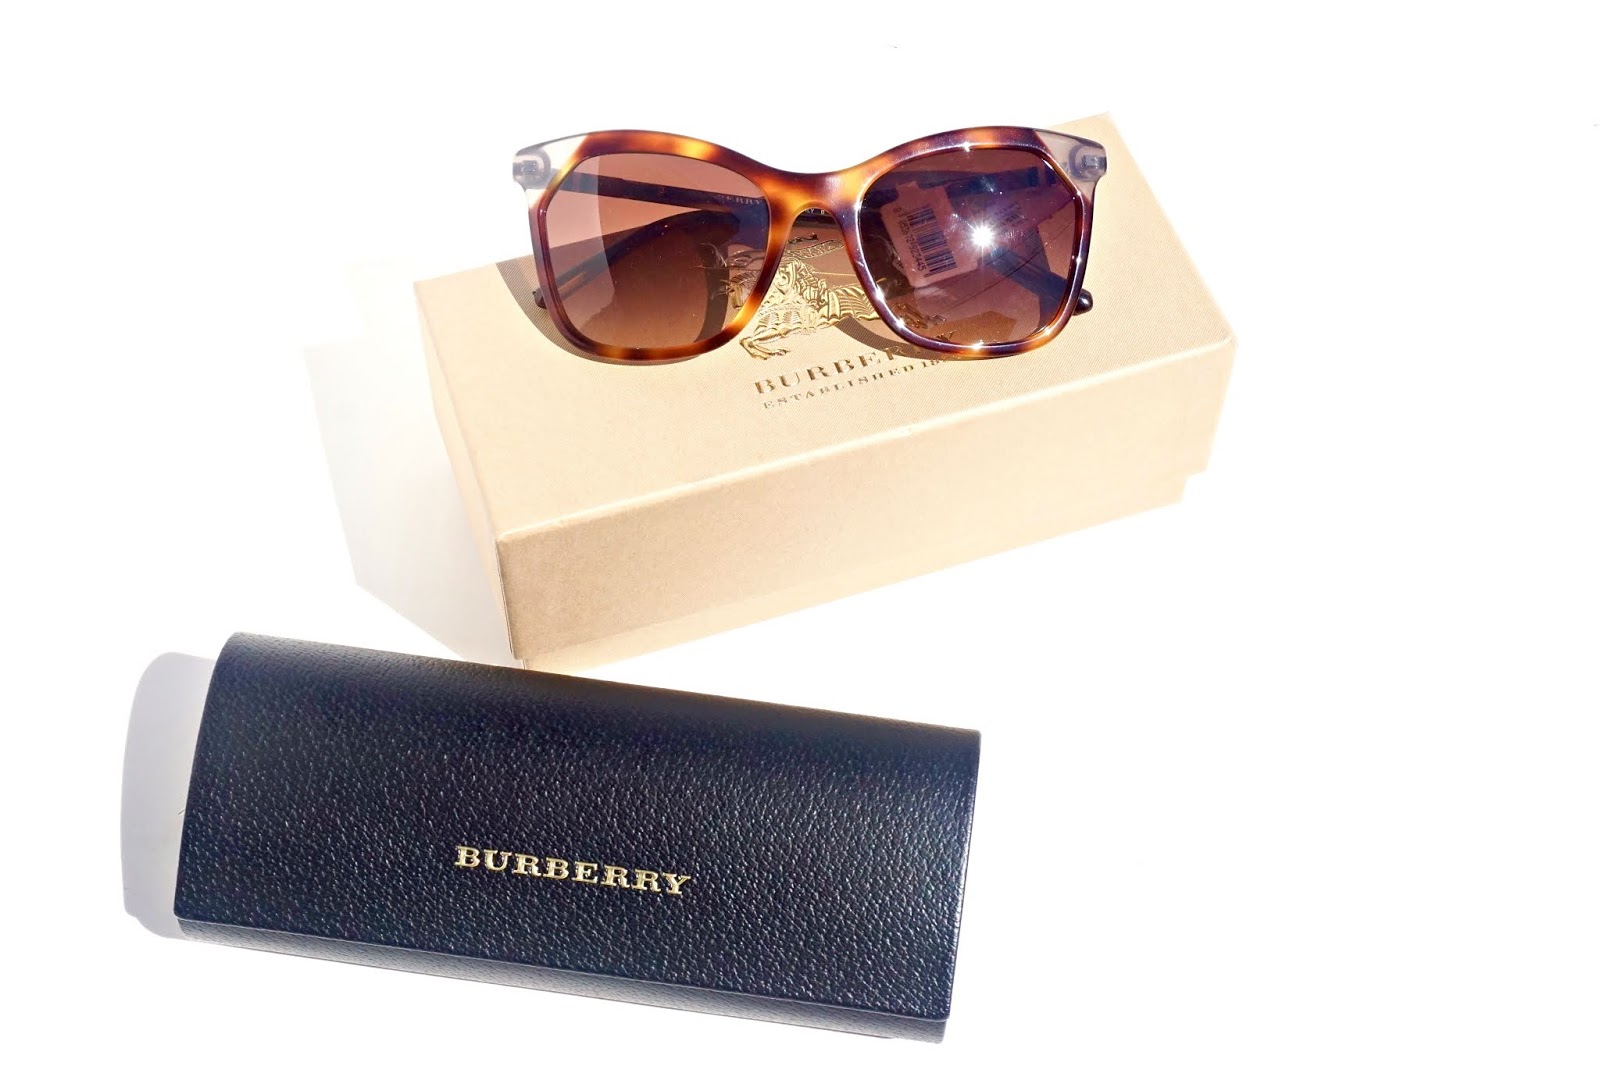 Burberry Heritage 54mm Square Sunglasses Nordstrom